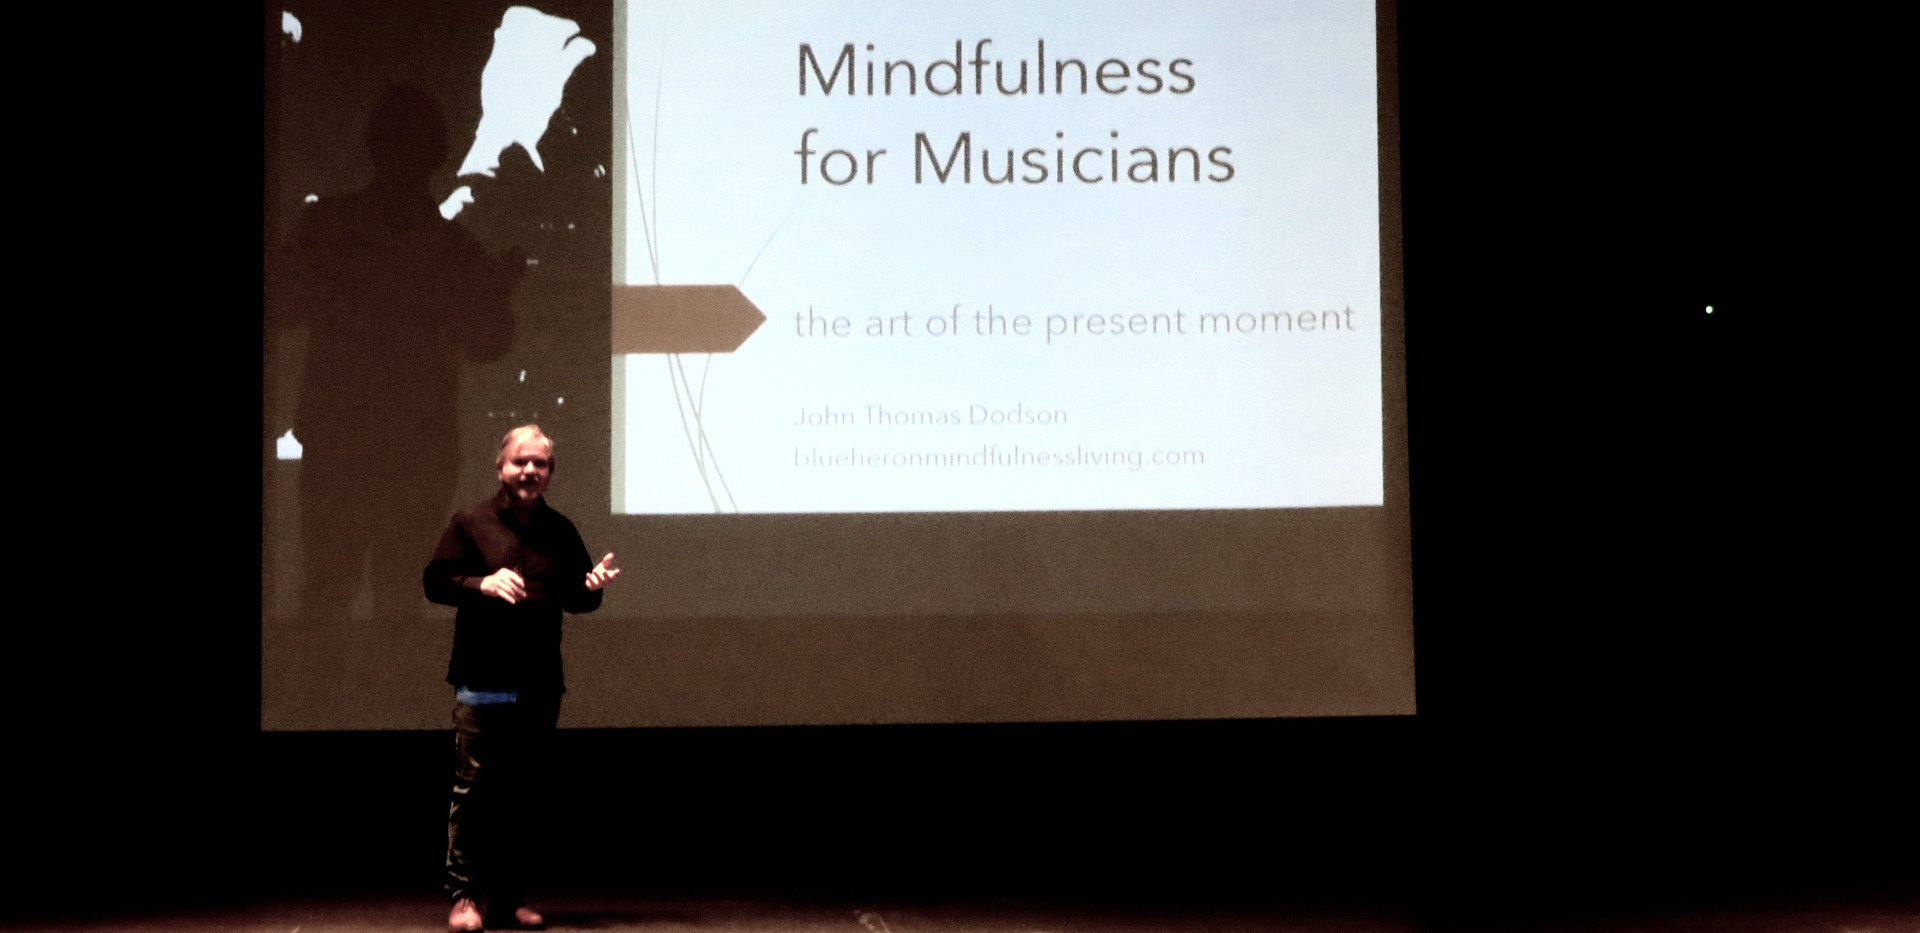 Mindfulness for Musicians